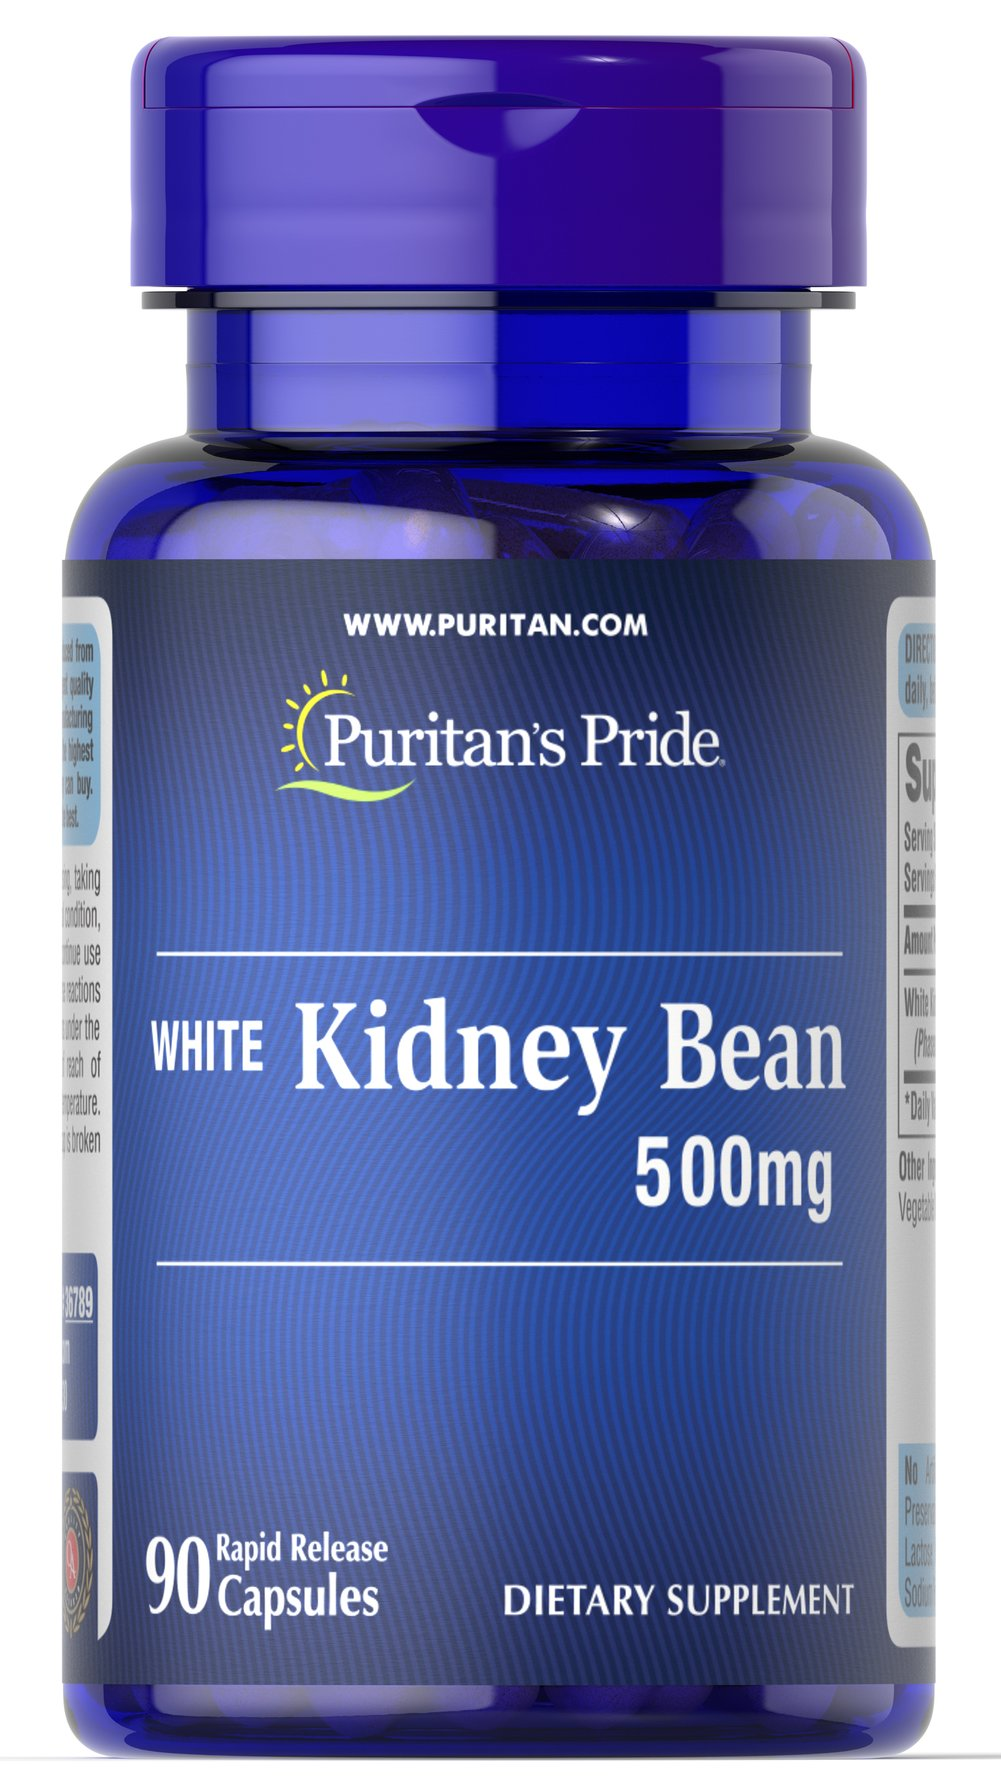 White Kidney Bean  90 Capsules 500 mg $20.99